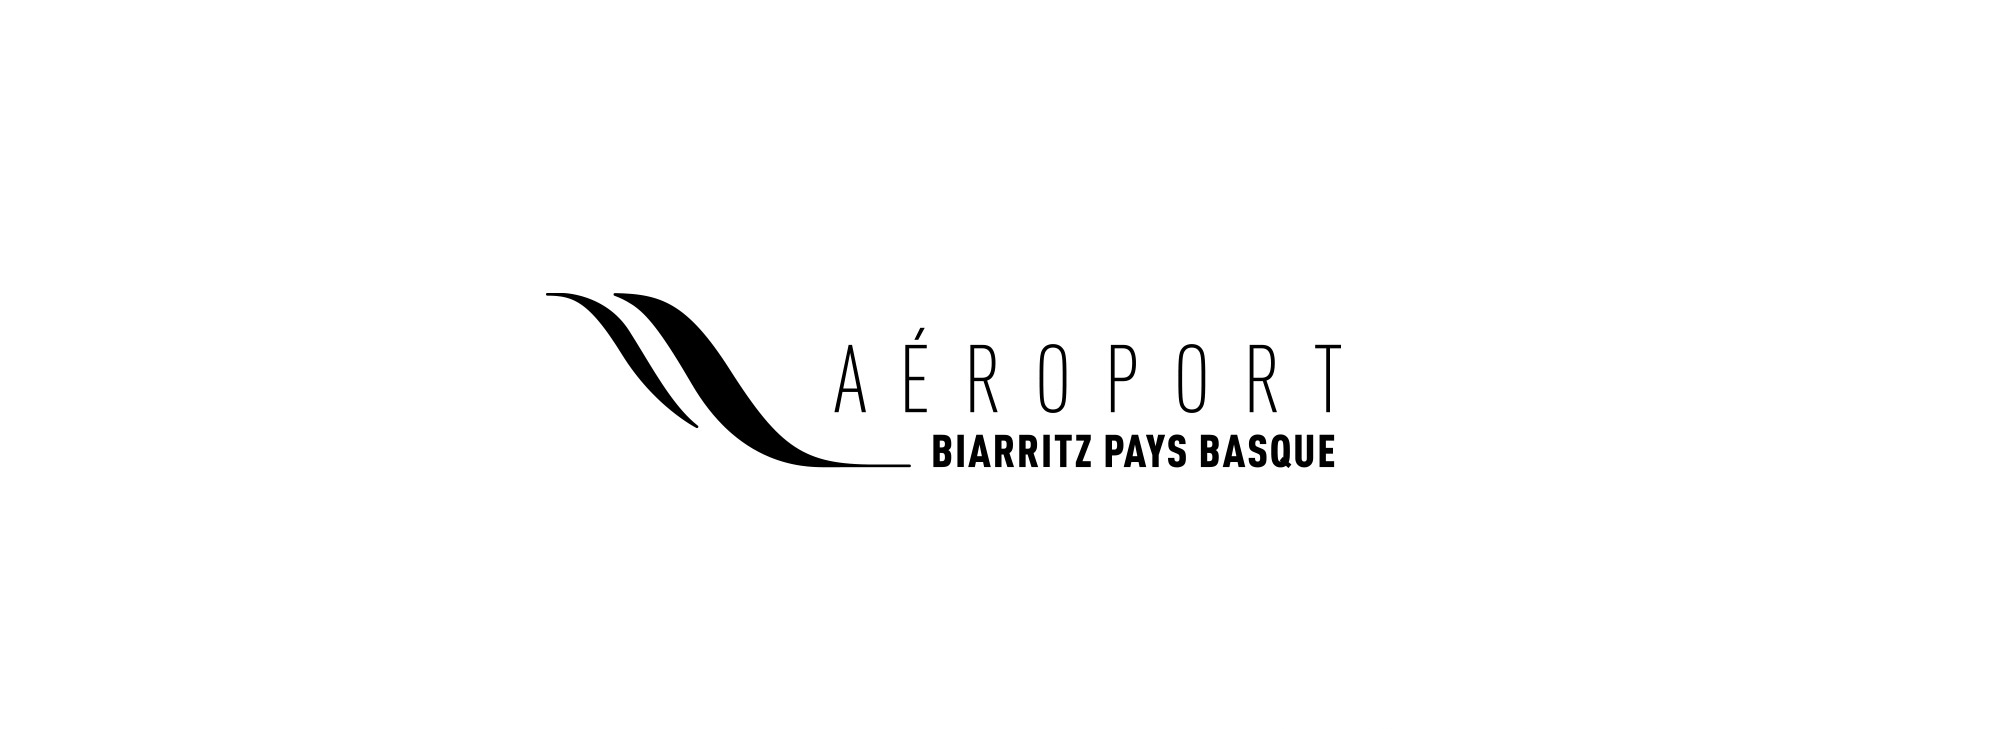 aeroport biarritz pays basque